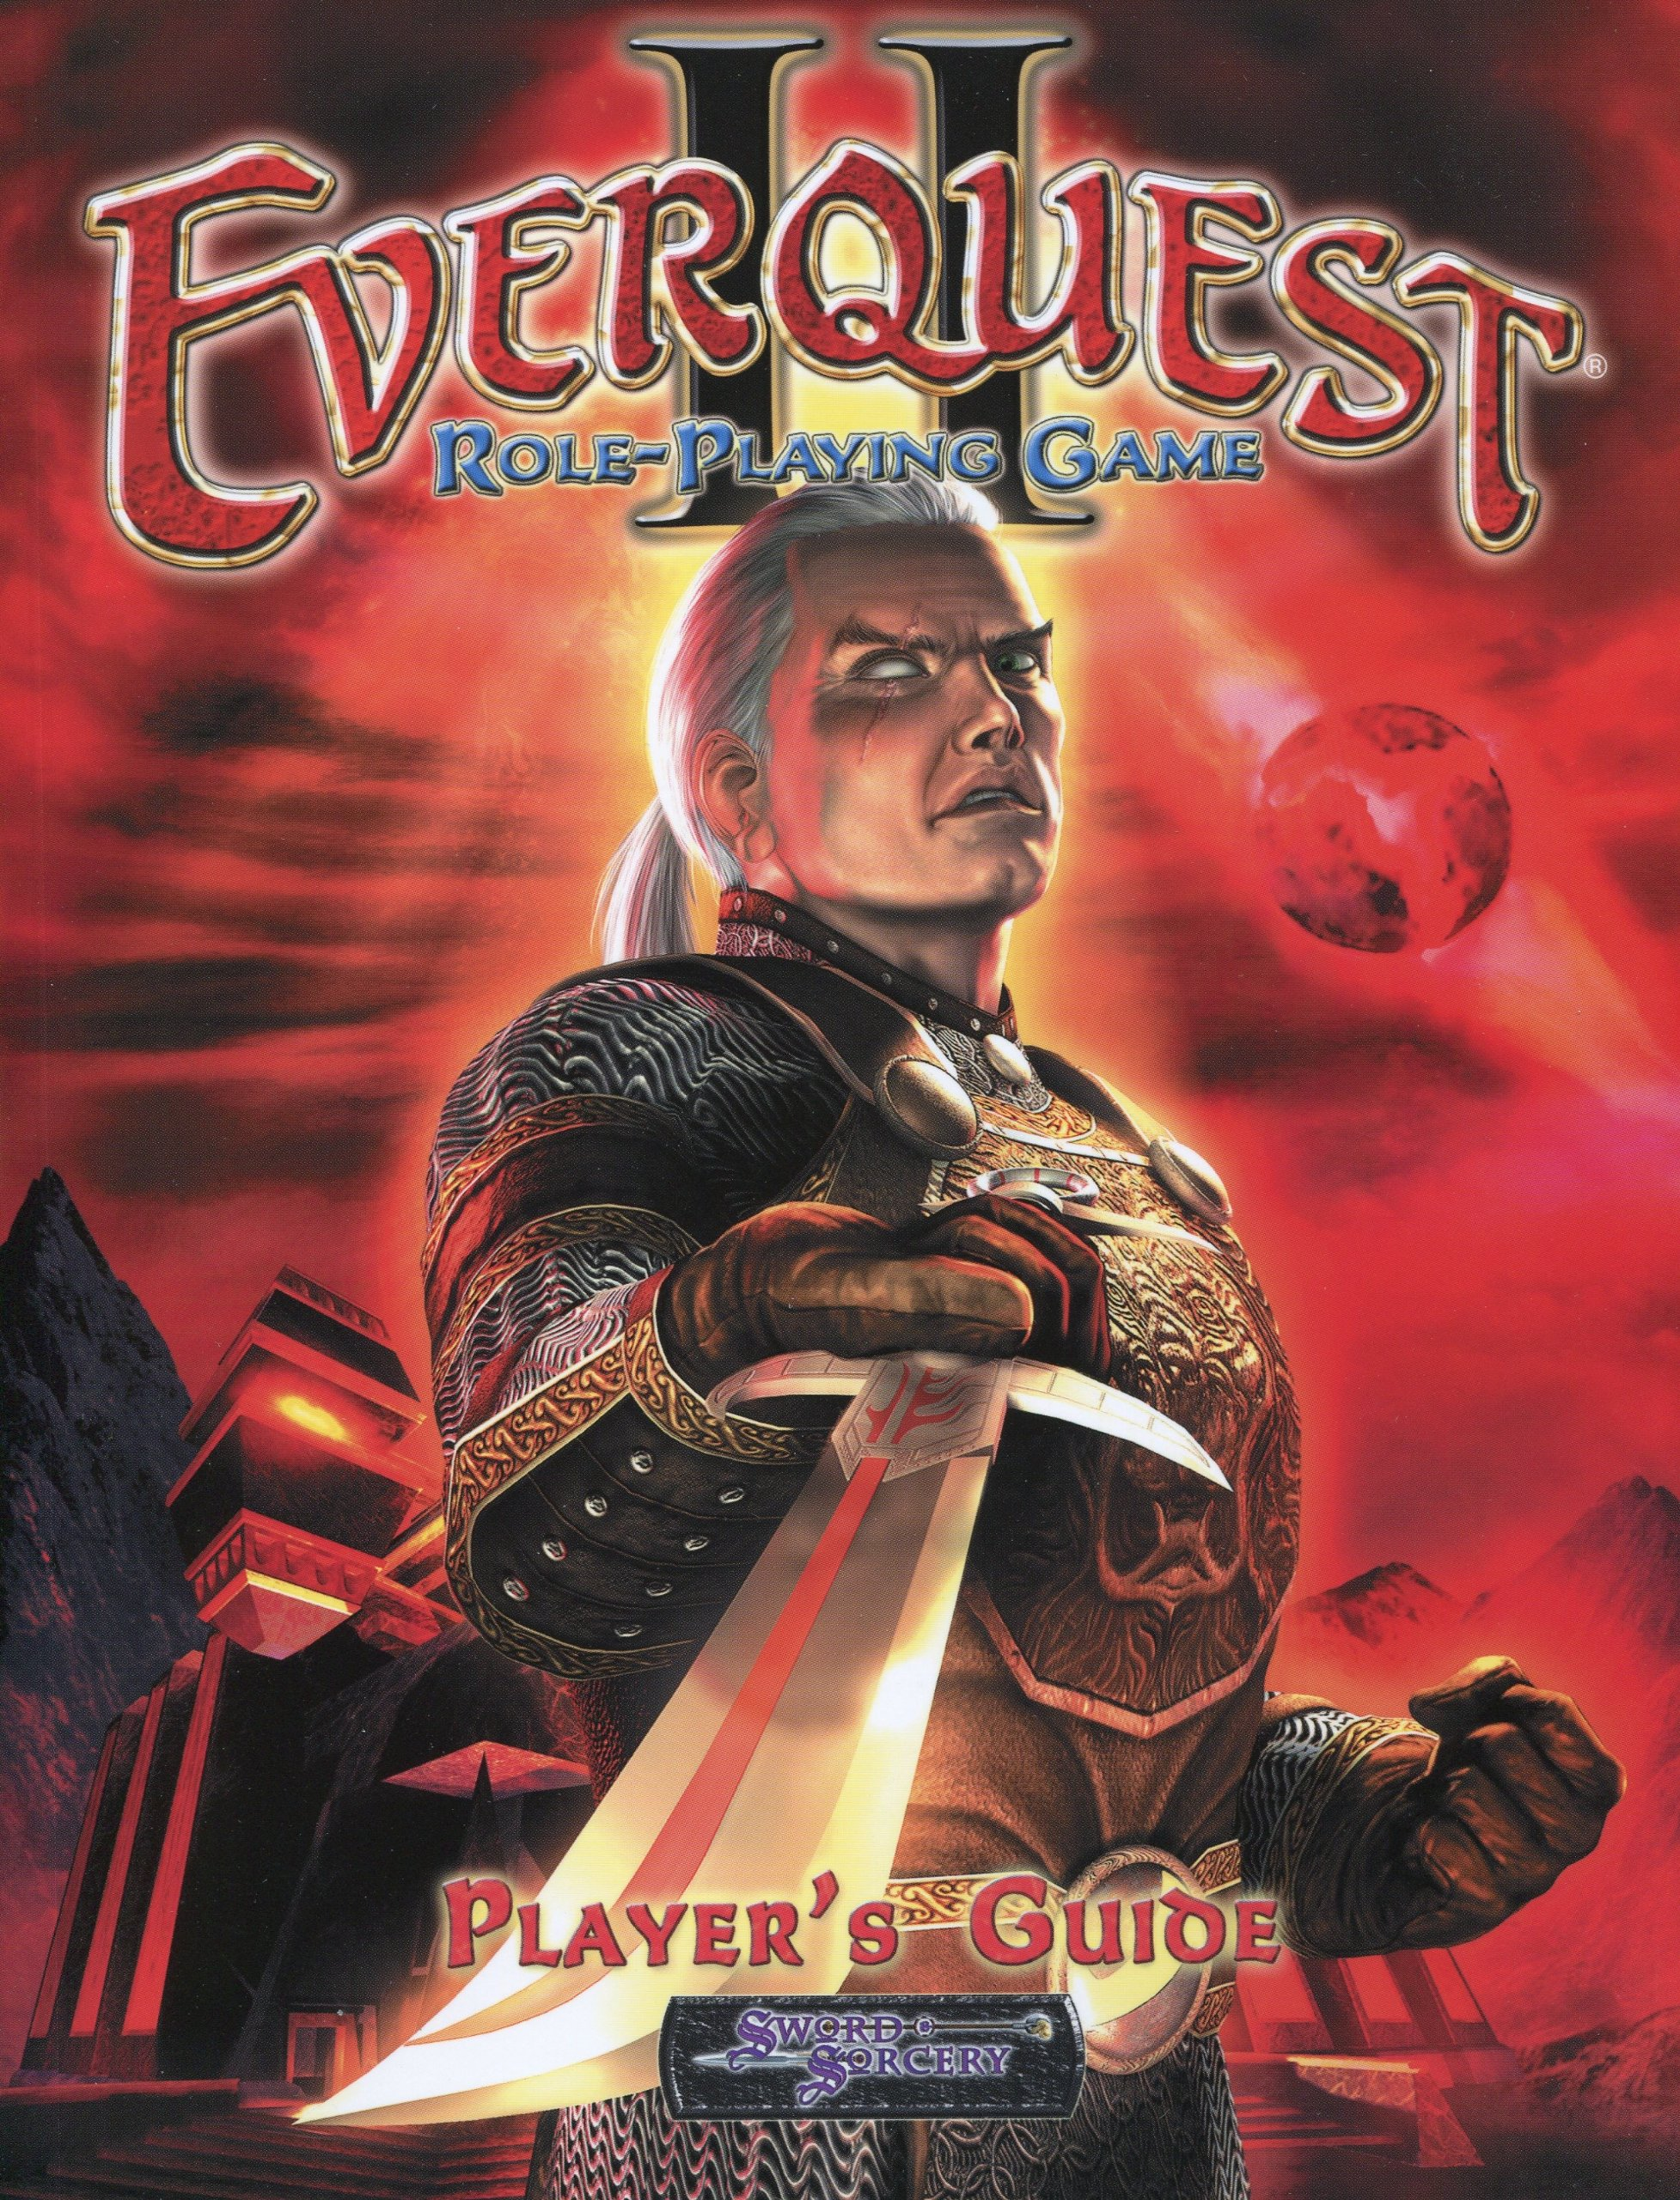 EverQuest II Role Playing Game: Player's Guide - Used